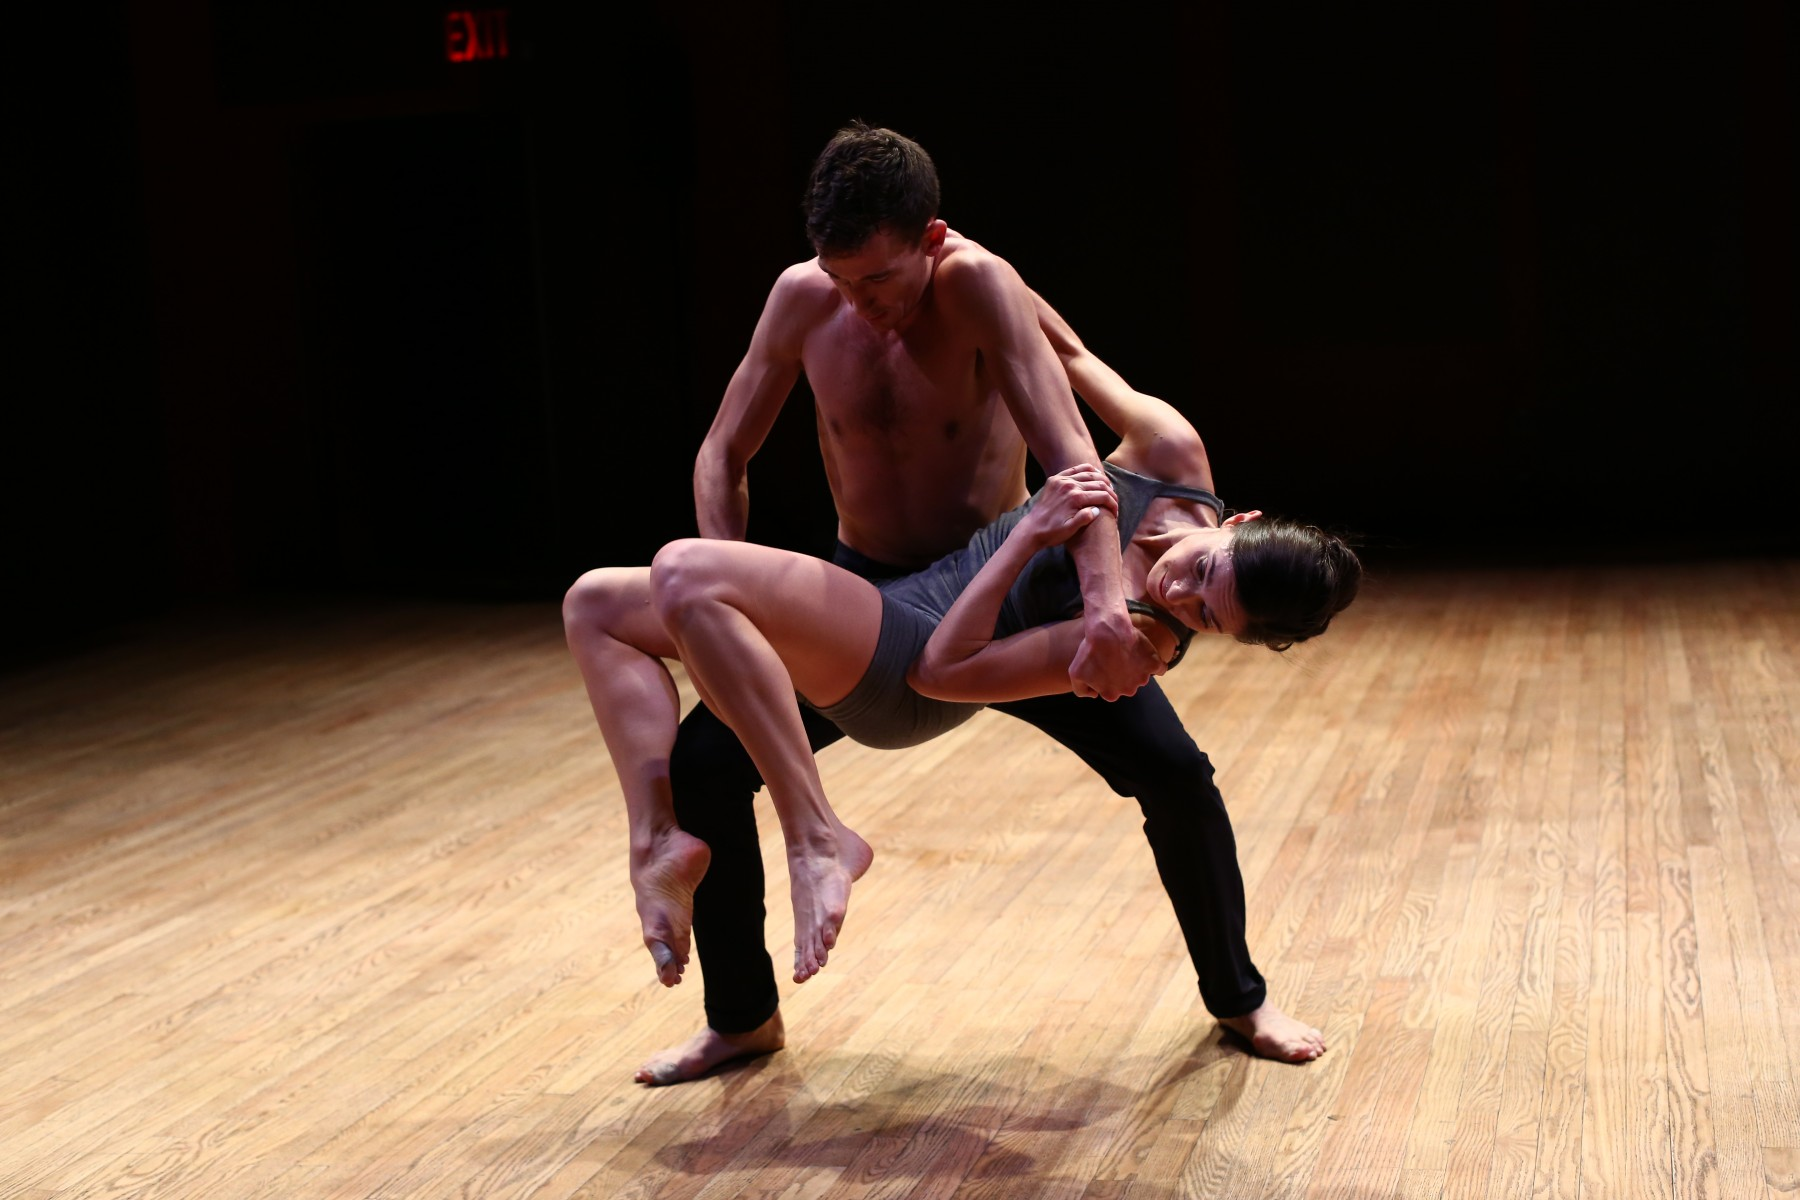 Dancer Dylan lifts dancer Melissa Toogood in a duet inspired by Hitchcock's North by Northwest